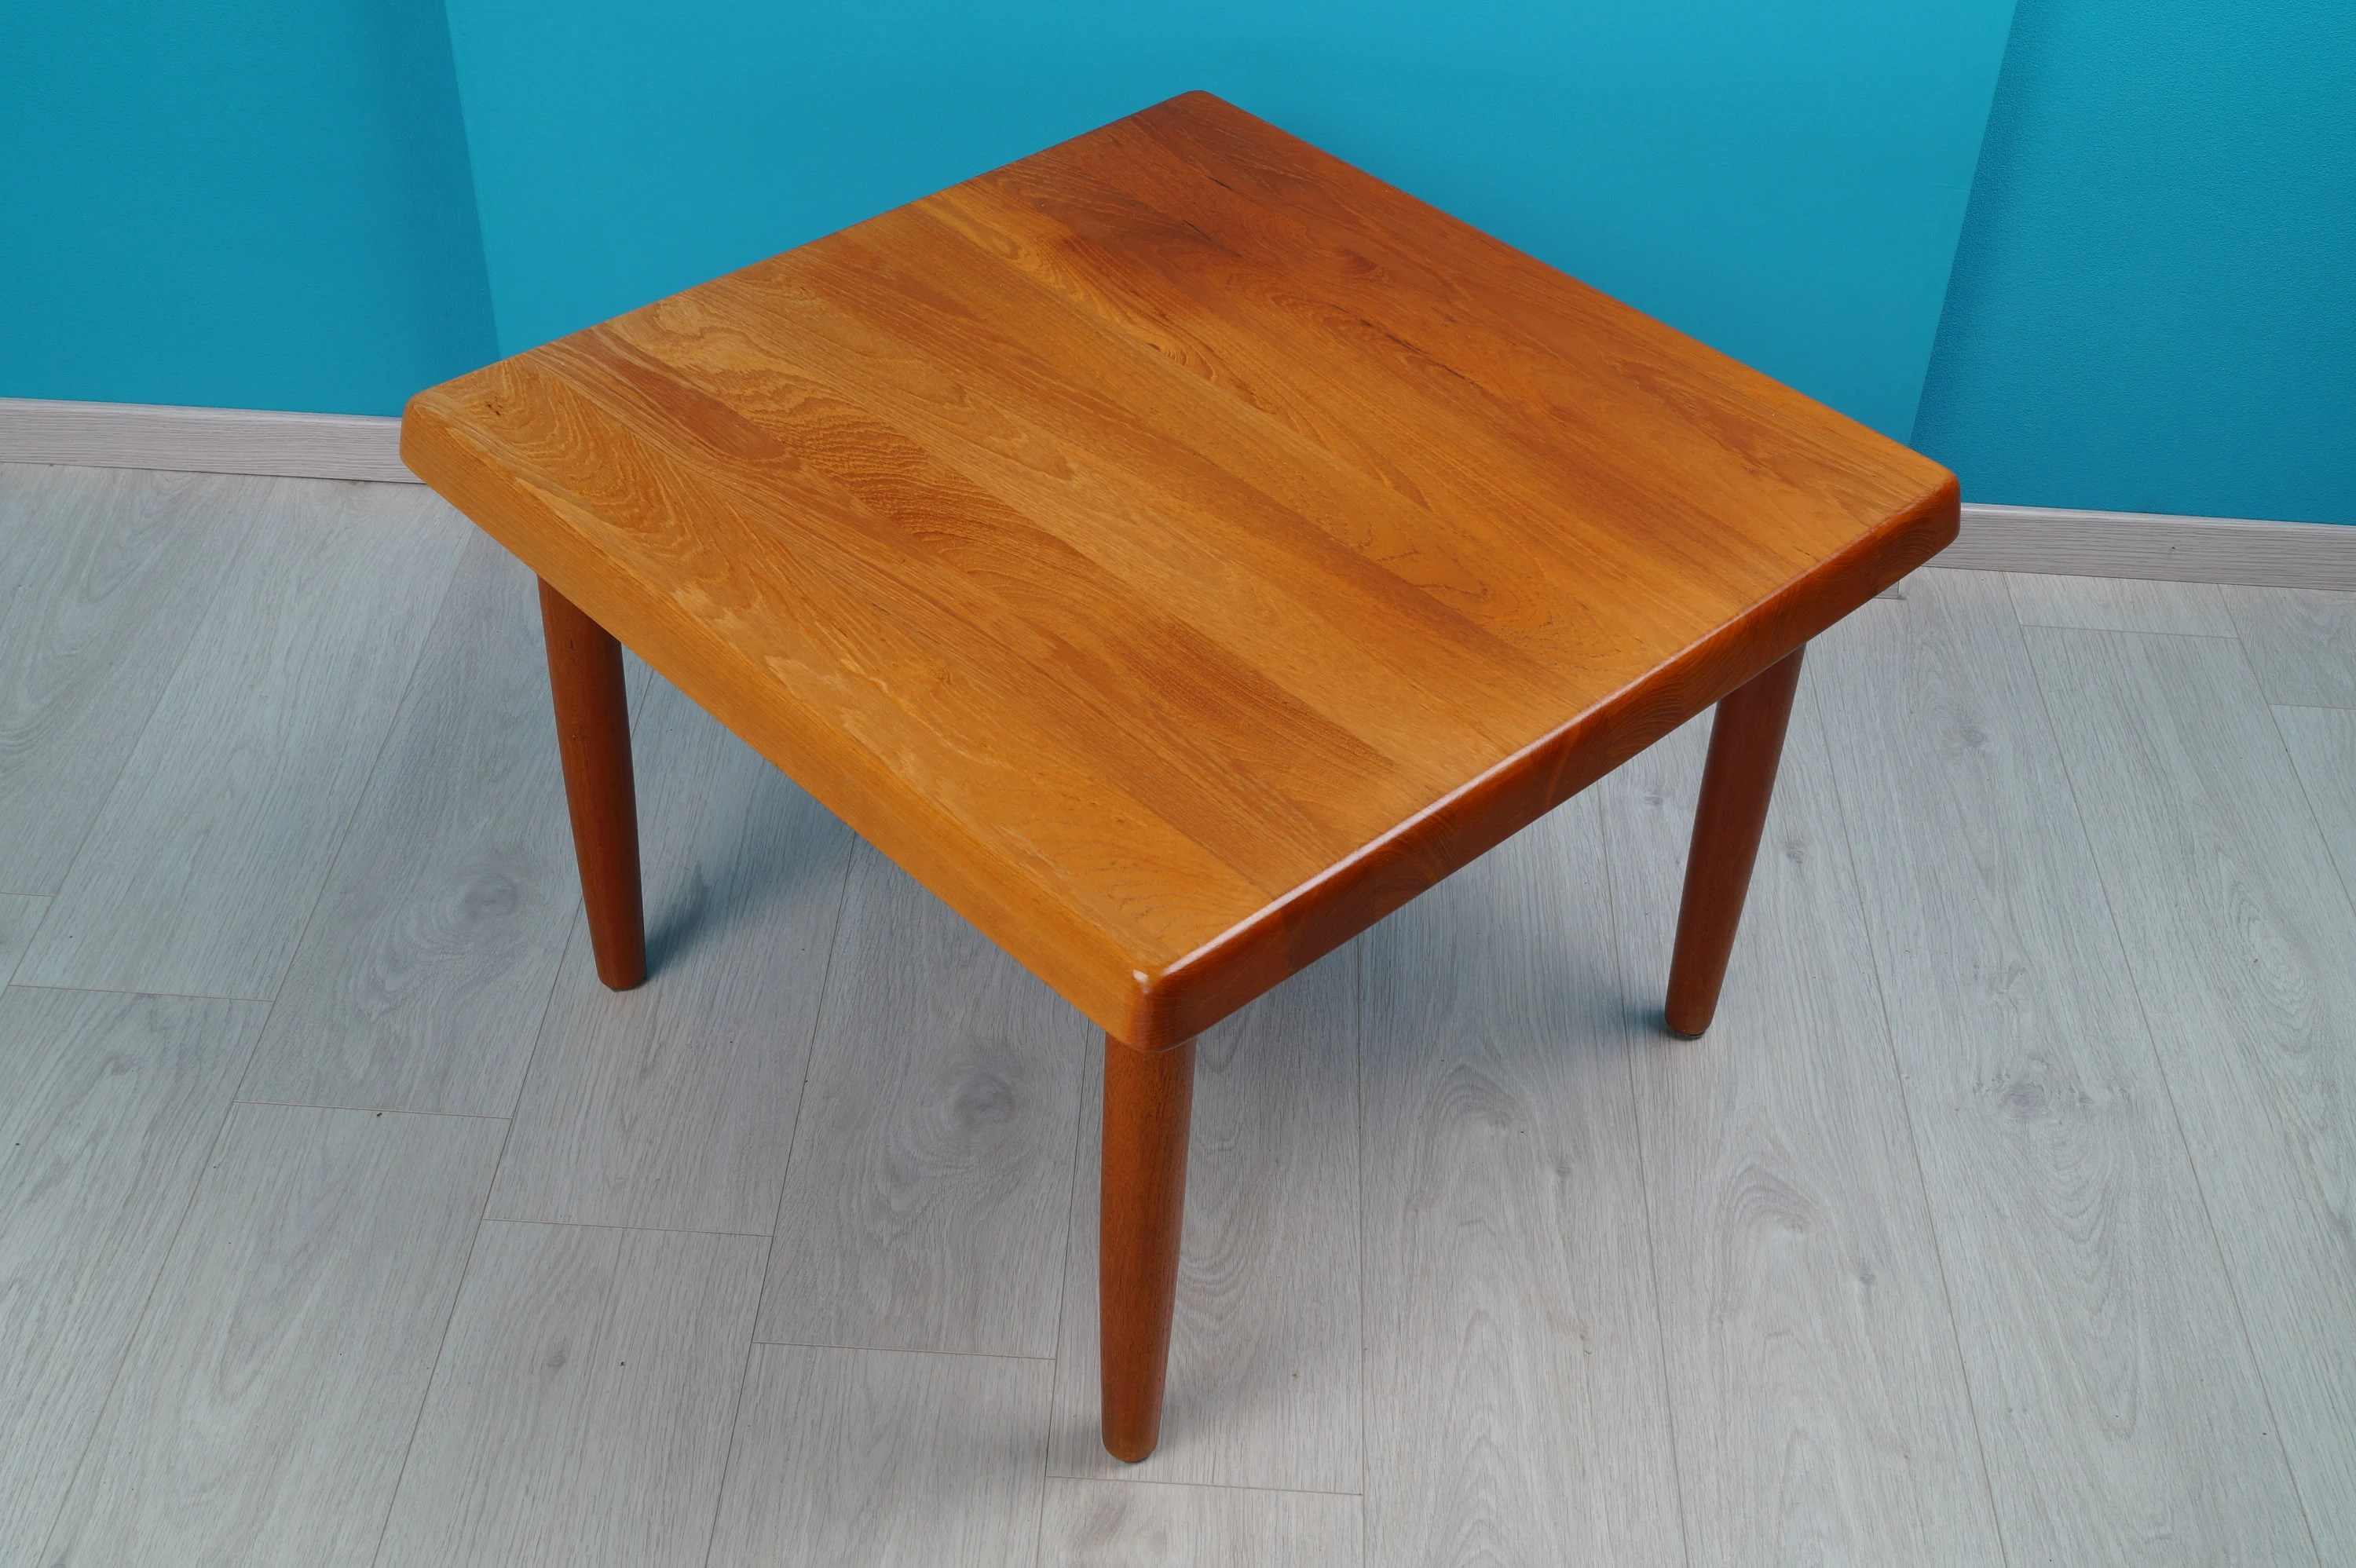 Teak Couchtisch Danish Teak Coffee Table Square Niels Bach 60s Full Teak Danish